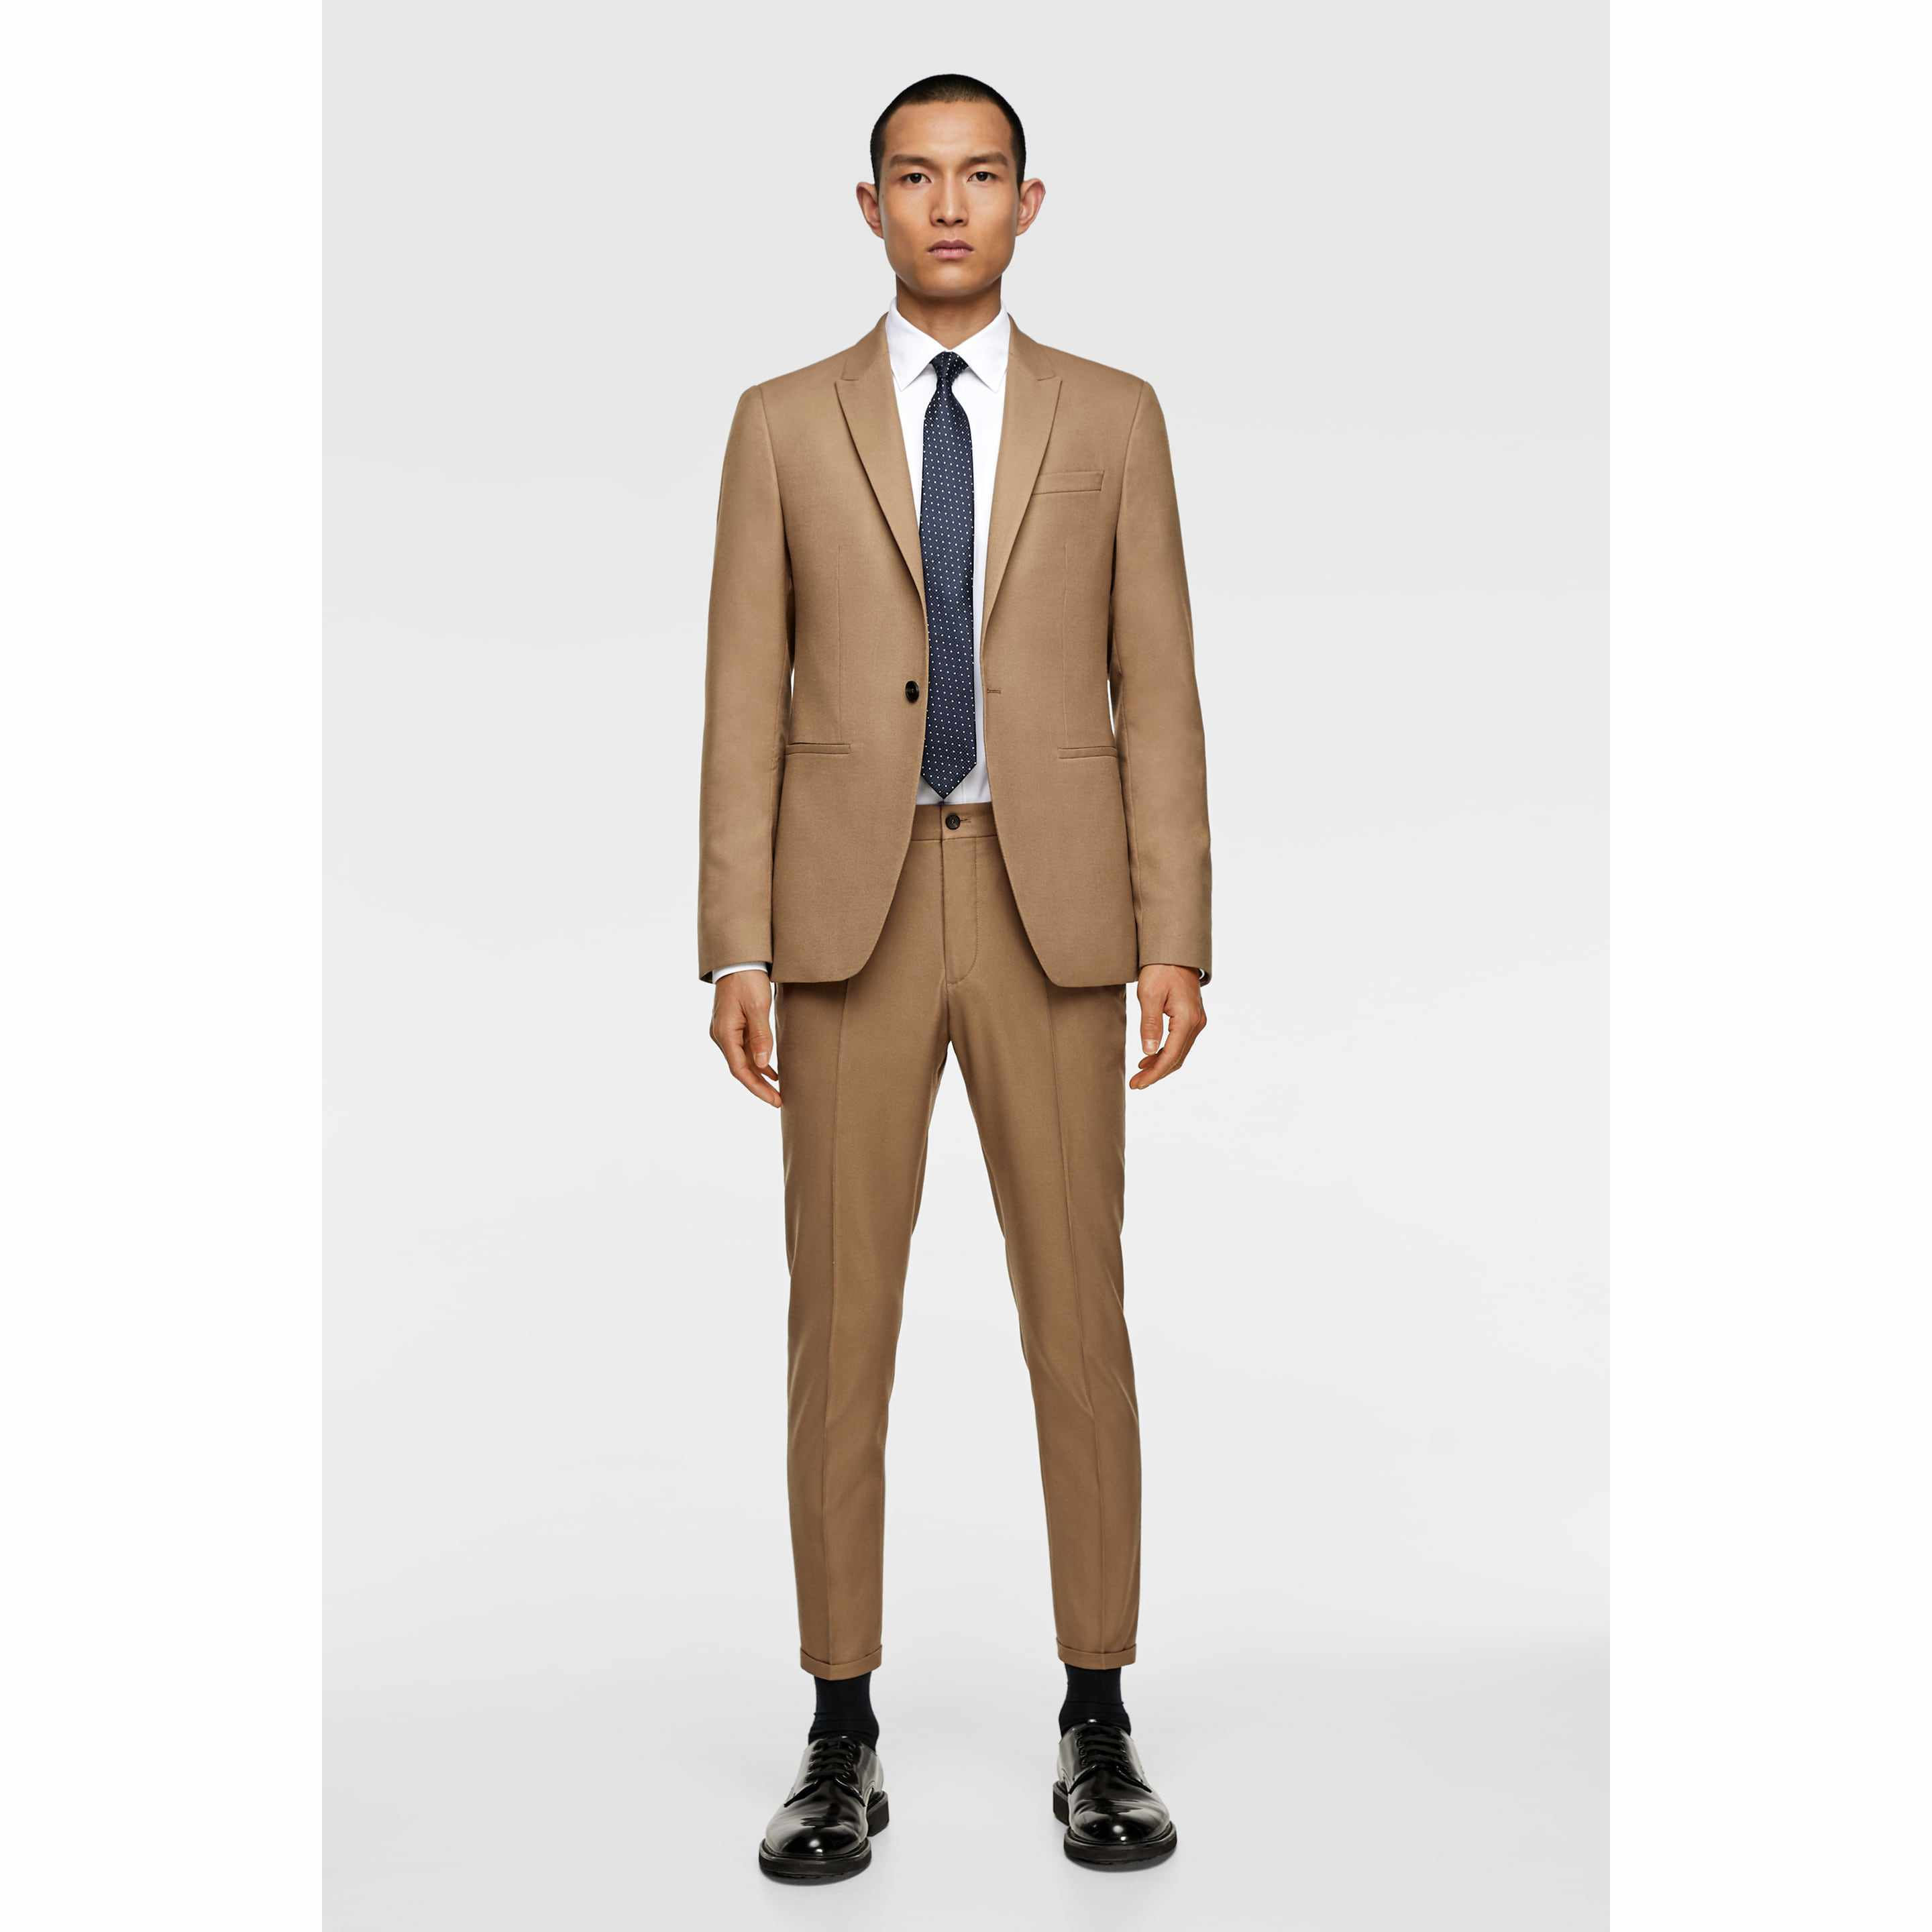 8f77ccf8 15 Stylish Men's Suits to Wear to a Spring or Summer Wedding